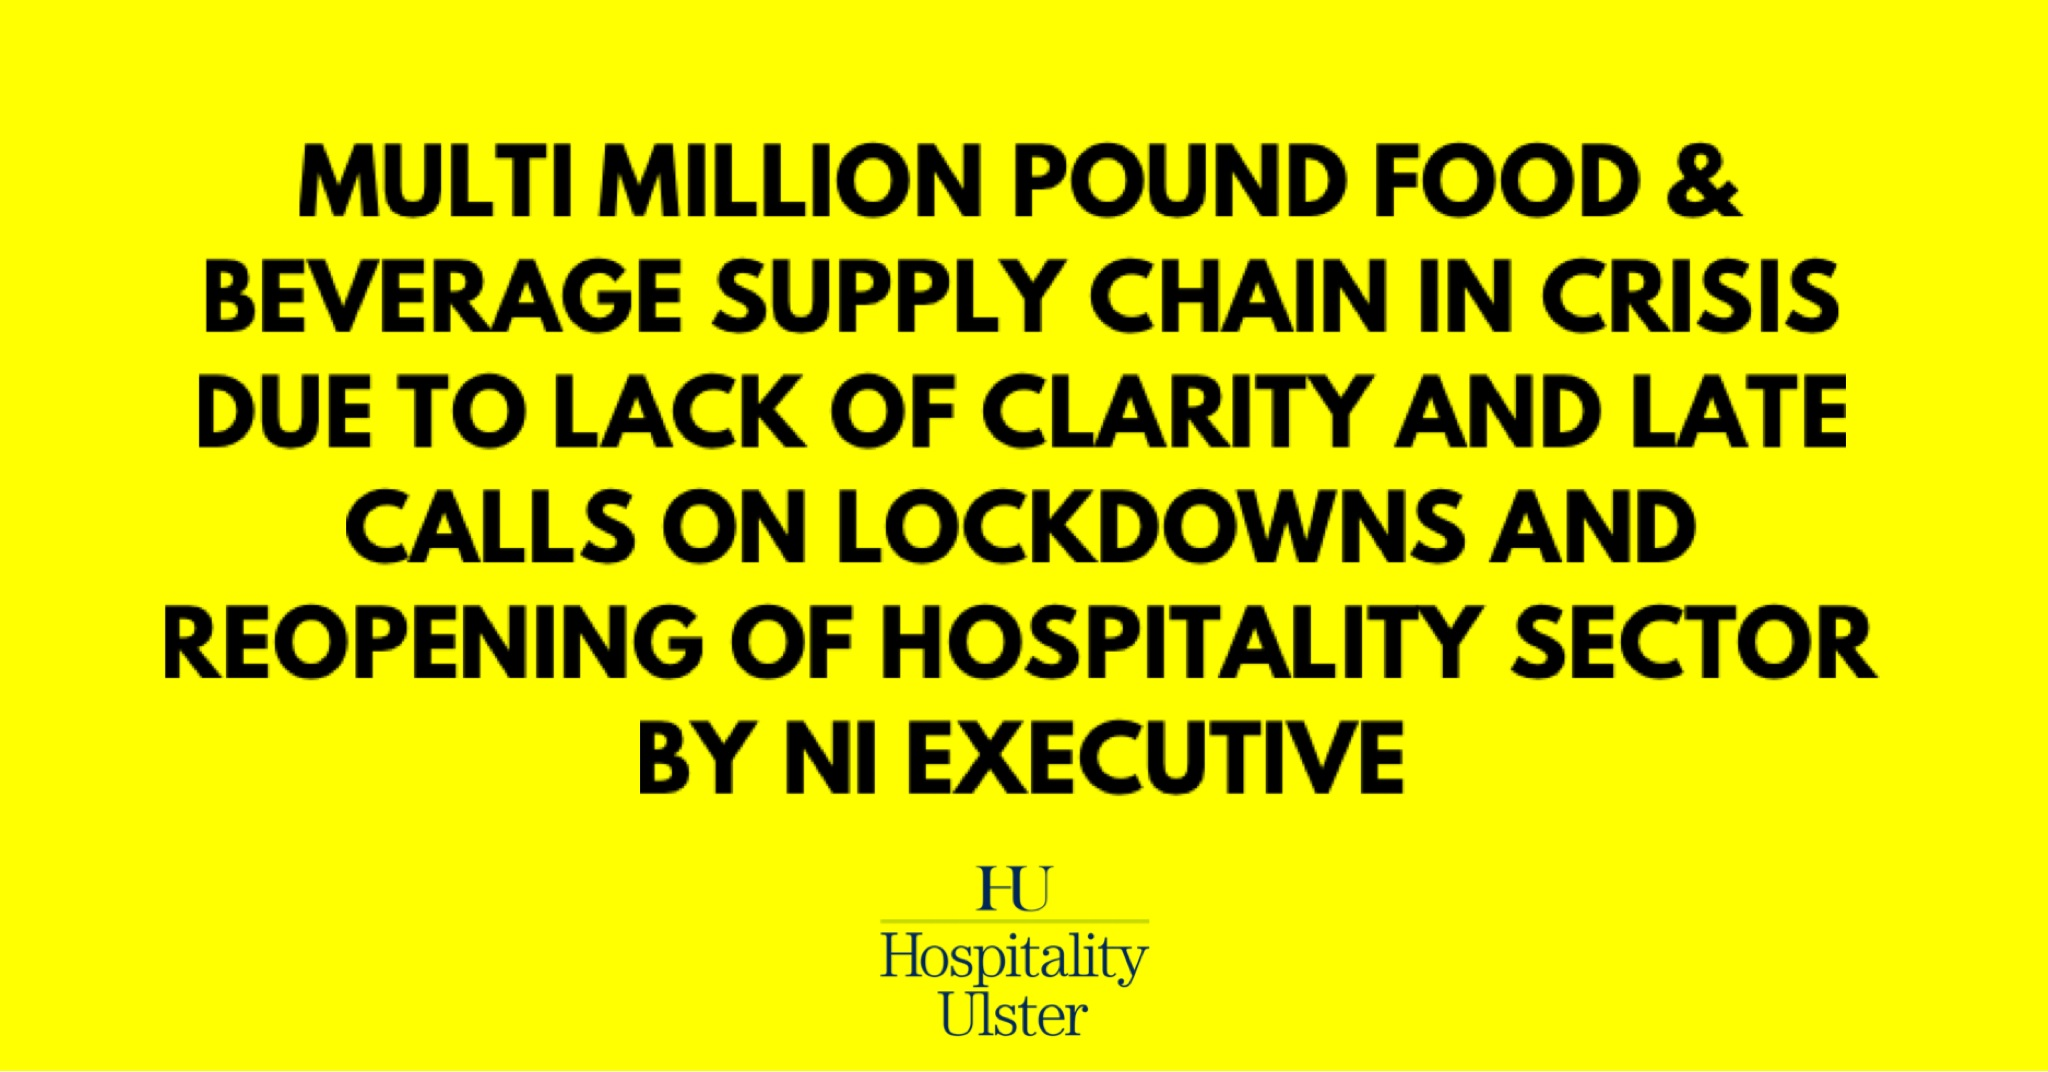 MULTI MILLION POUND FOOD AND BEVERAGE SUPPLY CHAIN IN CRISIS